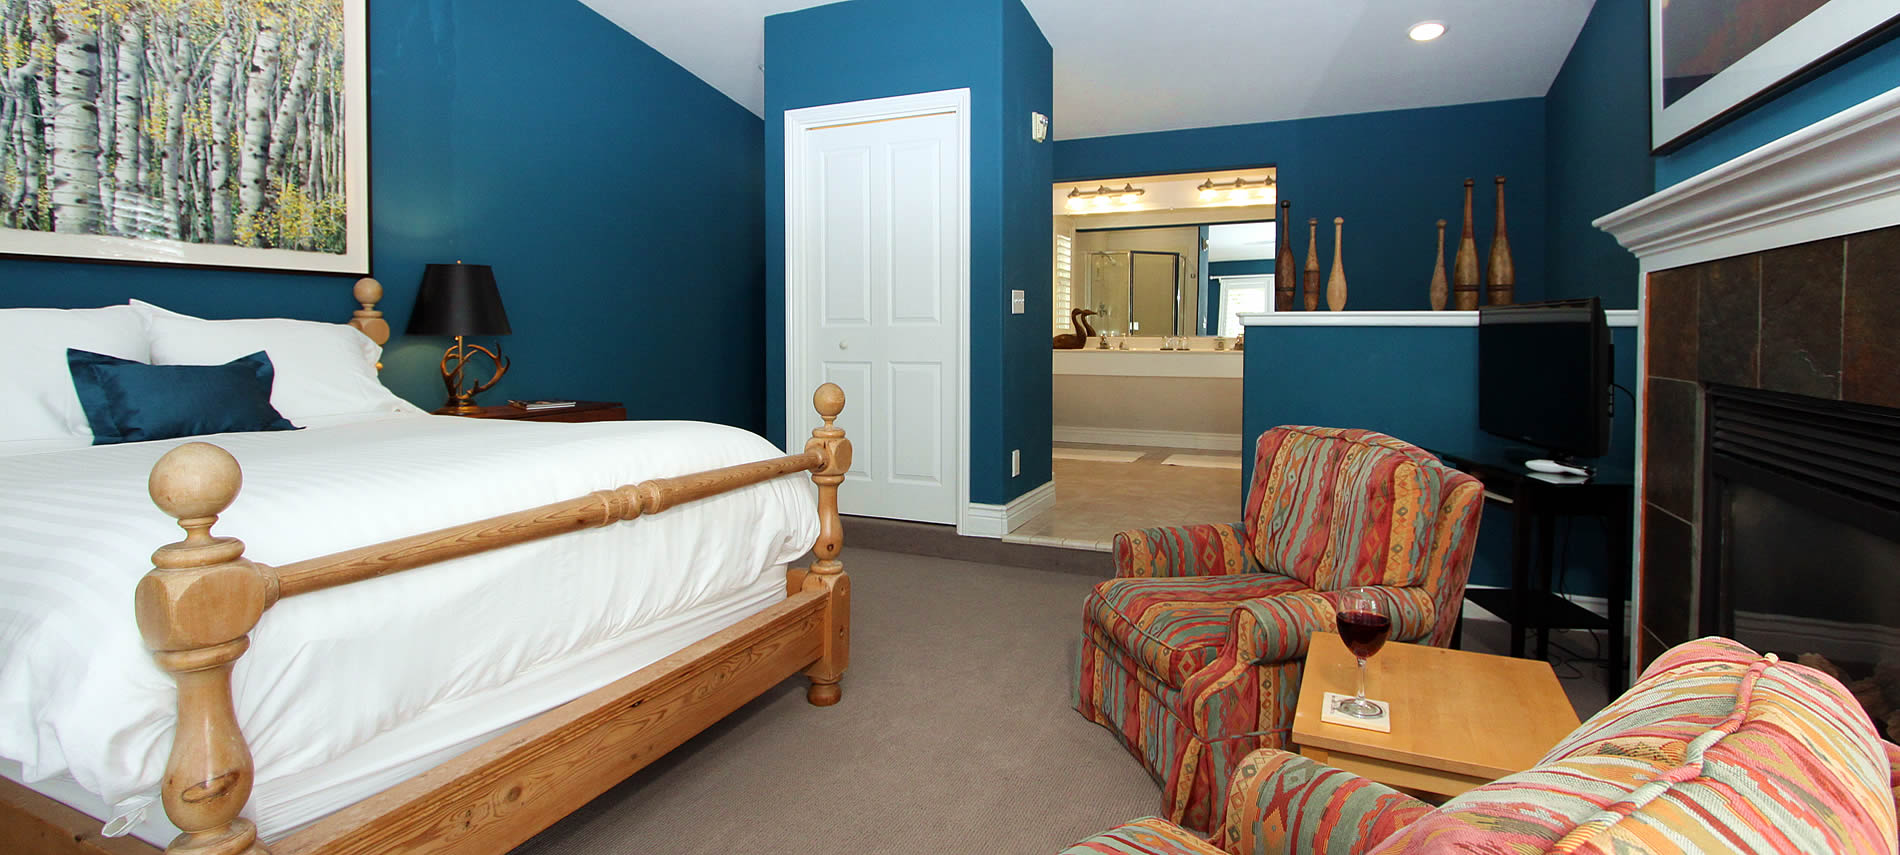 sonoma wine country inn guestroom